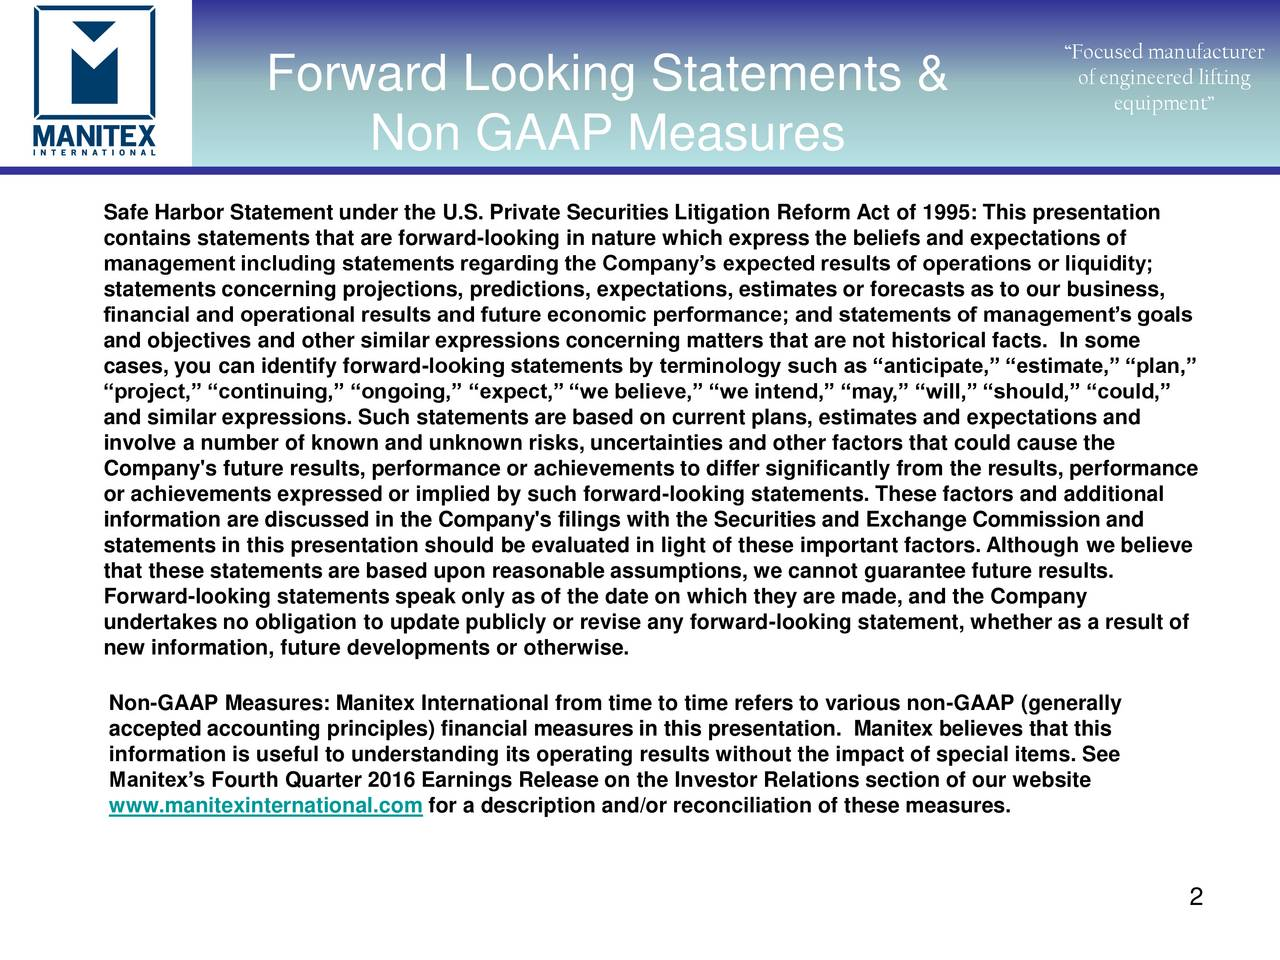 Forward Looking Statements & of engineered lifting equipment Non GAAP Measures Safe Harbor Statement under the U.S. Private Securities Litigation Reform Act of 1995: This presentation contains statements that are forward-looking in nature which express the beliefs and expectations of management including statements regarding the Companys expected results of operations or liquidity; statements concerning projections, predictions, expectations, estimates or forecasts as to our business, financial and operational results and future economic performance; and statements of managements goals and objectives and other similar expressions concerning matters that are not historical facts. In some cases, you can identify forward-looking statements by terminology such as anticipate, estimate, plan, project, continuing, ongoing, expect, we believe, we intend, may, will, should, could, and similar expressions. Such statements are based on current plans, estimates and expectations and involve a number of known and unknown risks, uncertainties and other factors that could cause the Company's future results, performance or achievements to differ significantly from the results, performance or achievements expressed or implied by such forward-looking statements. These factors and additional information are discussed in the Company's filings with the Securities and Exchange Commission and statements in this presentation should be evaluated in light of these important factors. Although we believe that these statements are based upon reasonable assumptions, we cannot guarantee future results. Forward-looking statements speak only as of the date on which they are made, and the Company undertakes no obligation to update publicly or revise any forward-looking statement, whether as a result of new information, future developments or otherwise. Non-GAAP Measures: Manitex International from time to time refers to various non-GAAP (generally accepted accounting principles) financial measures in